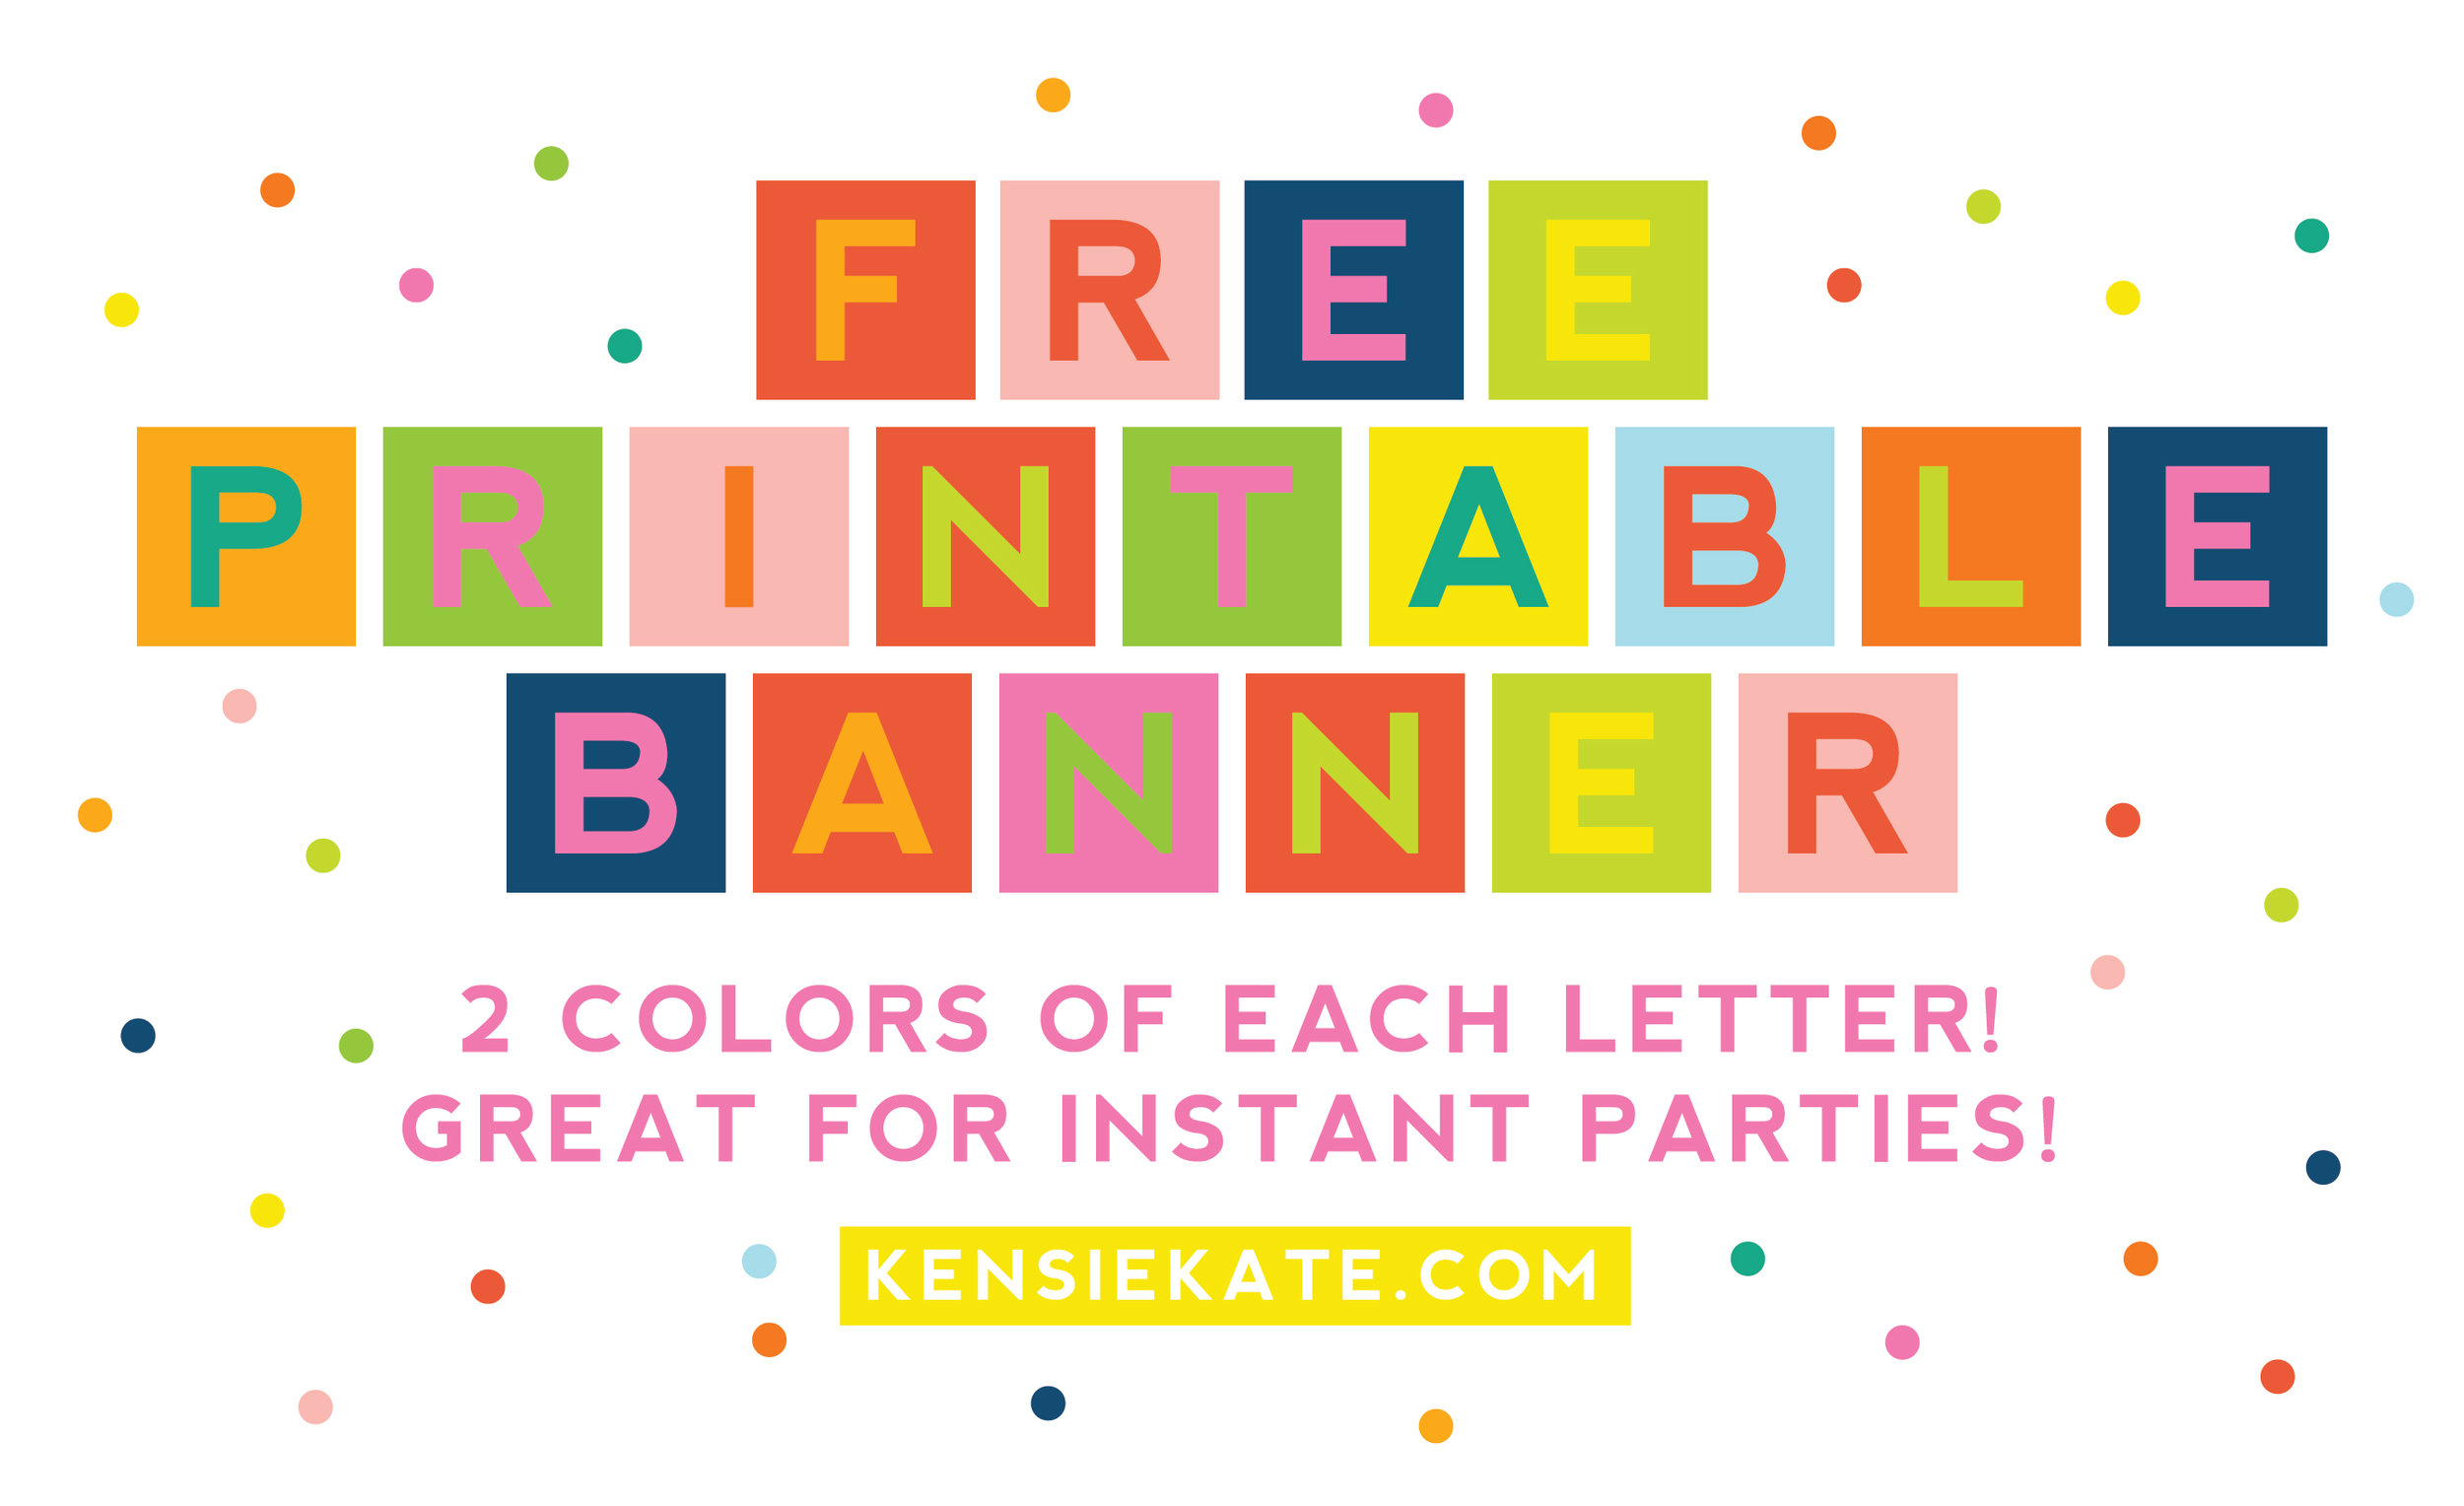 Free Printable Alphabet Letters For Banner